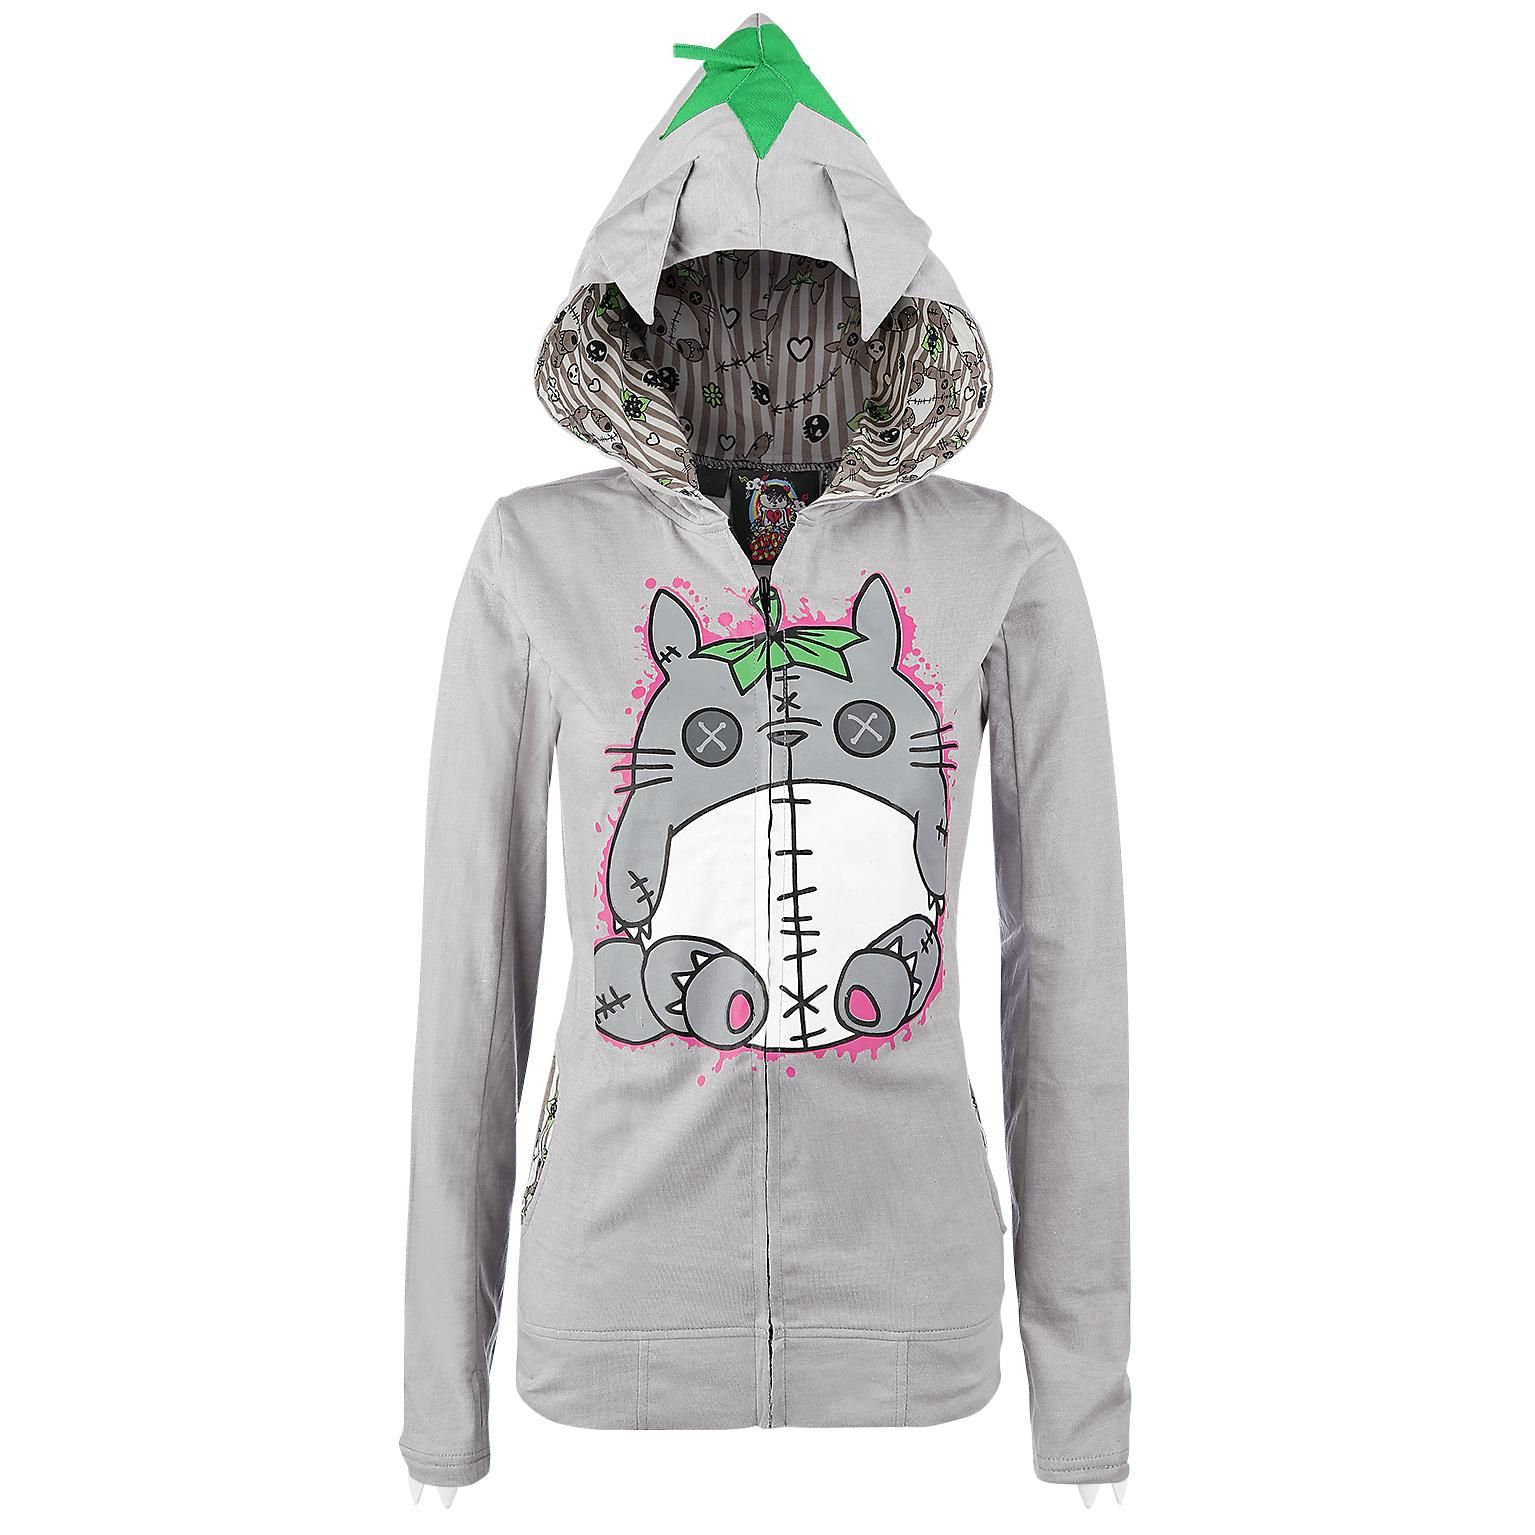 girls' hoodie jacket - large-scale front print - with a paw print ...